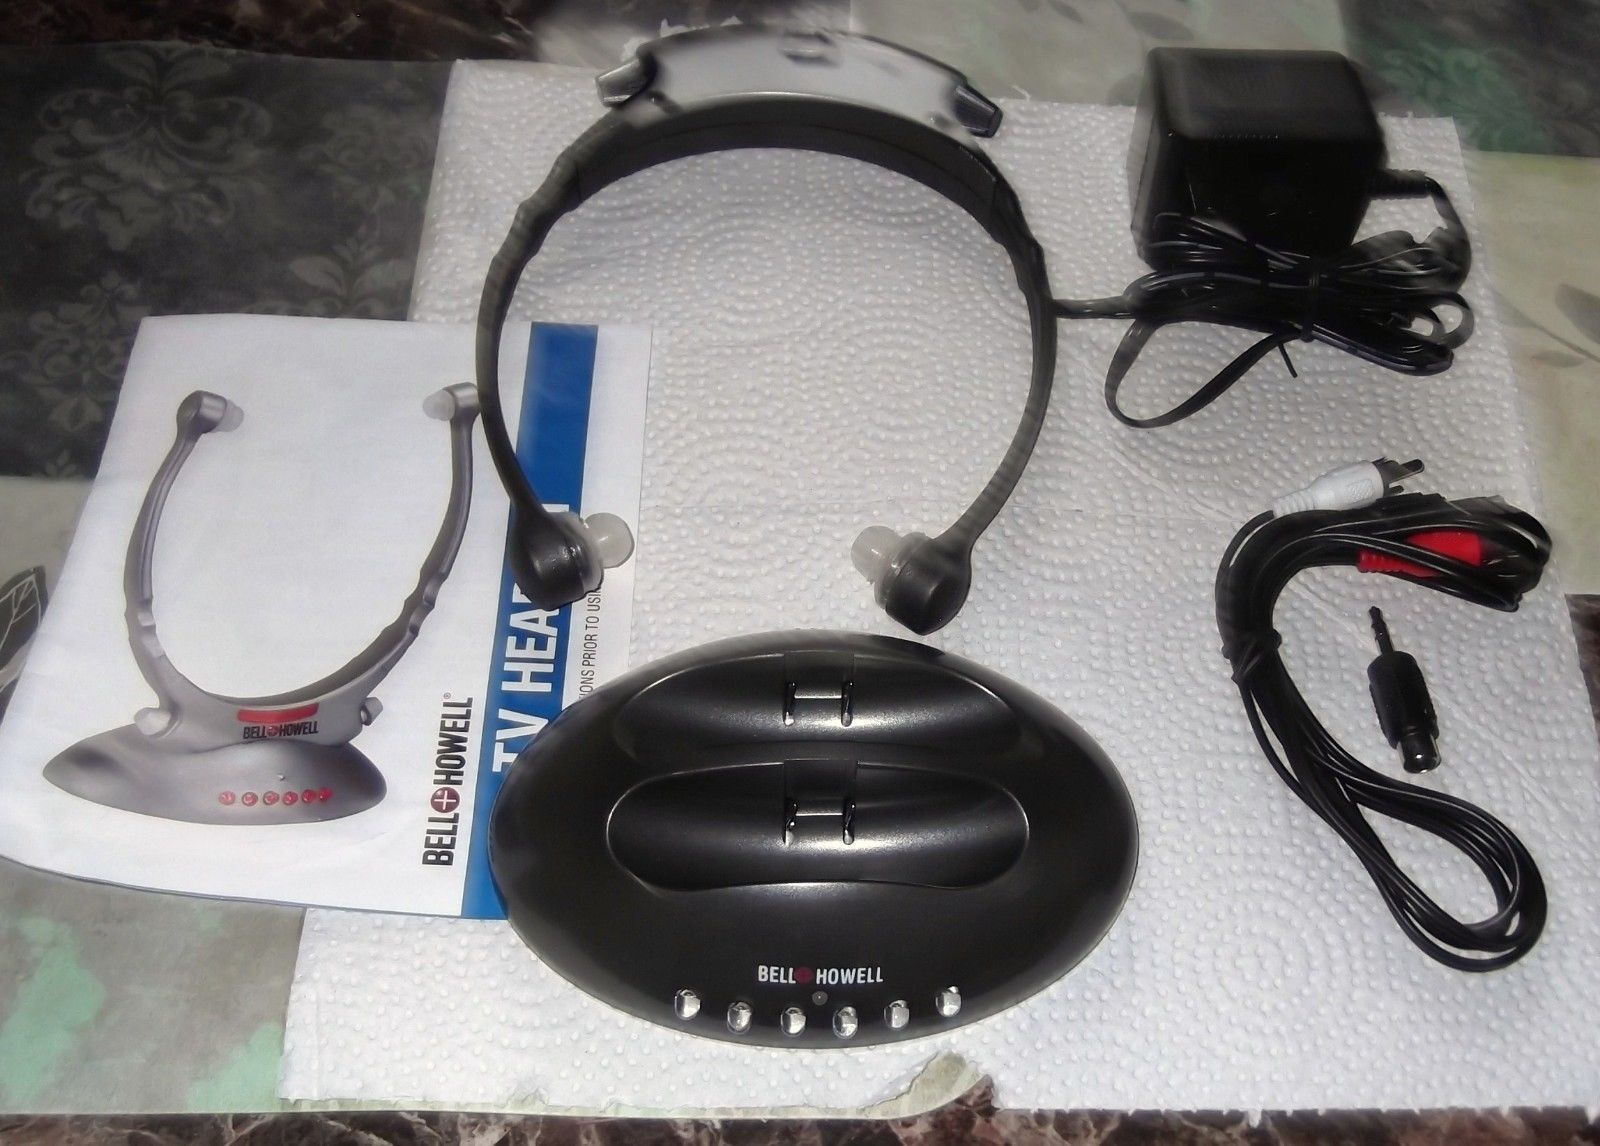 Bell & Howell Wireless Television Headset